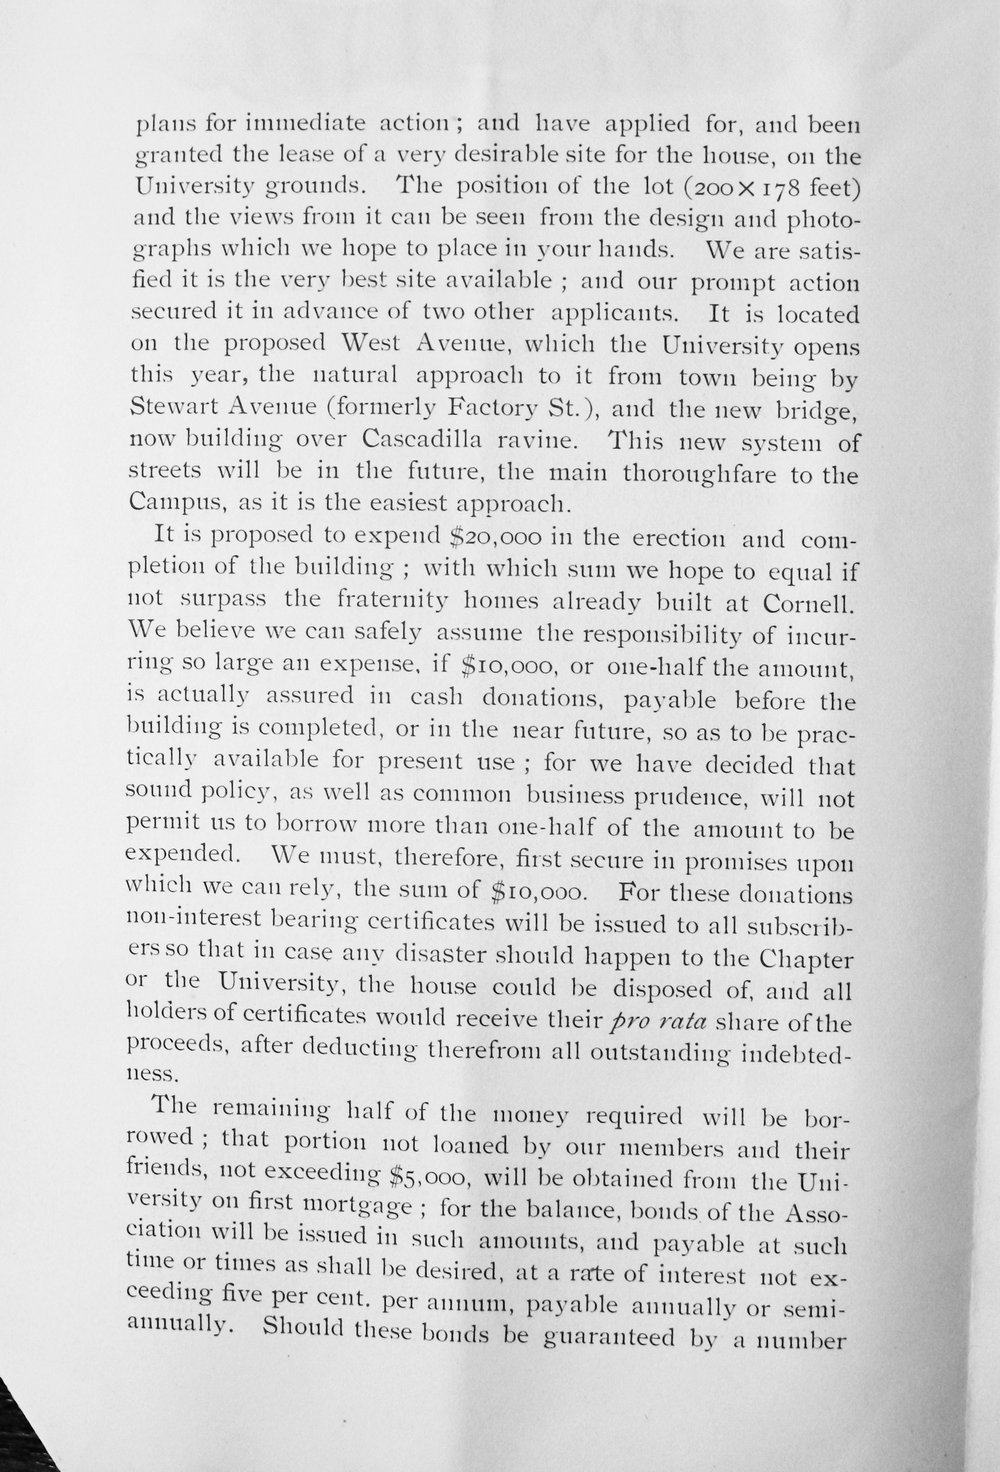 Circular re New House, Page 2